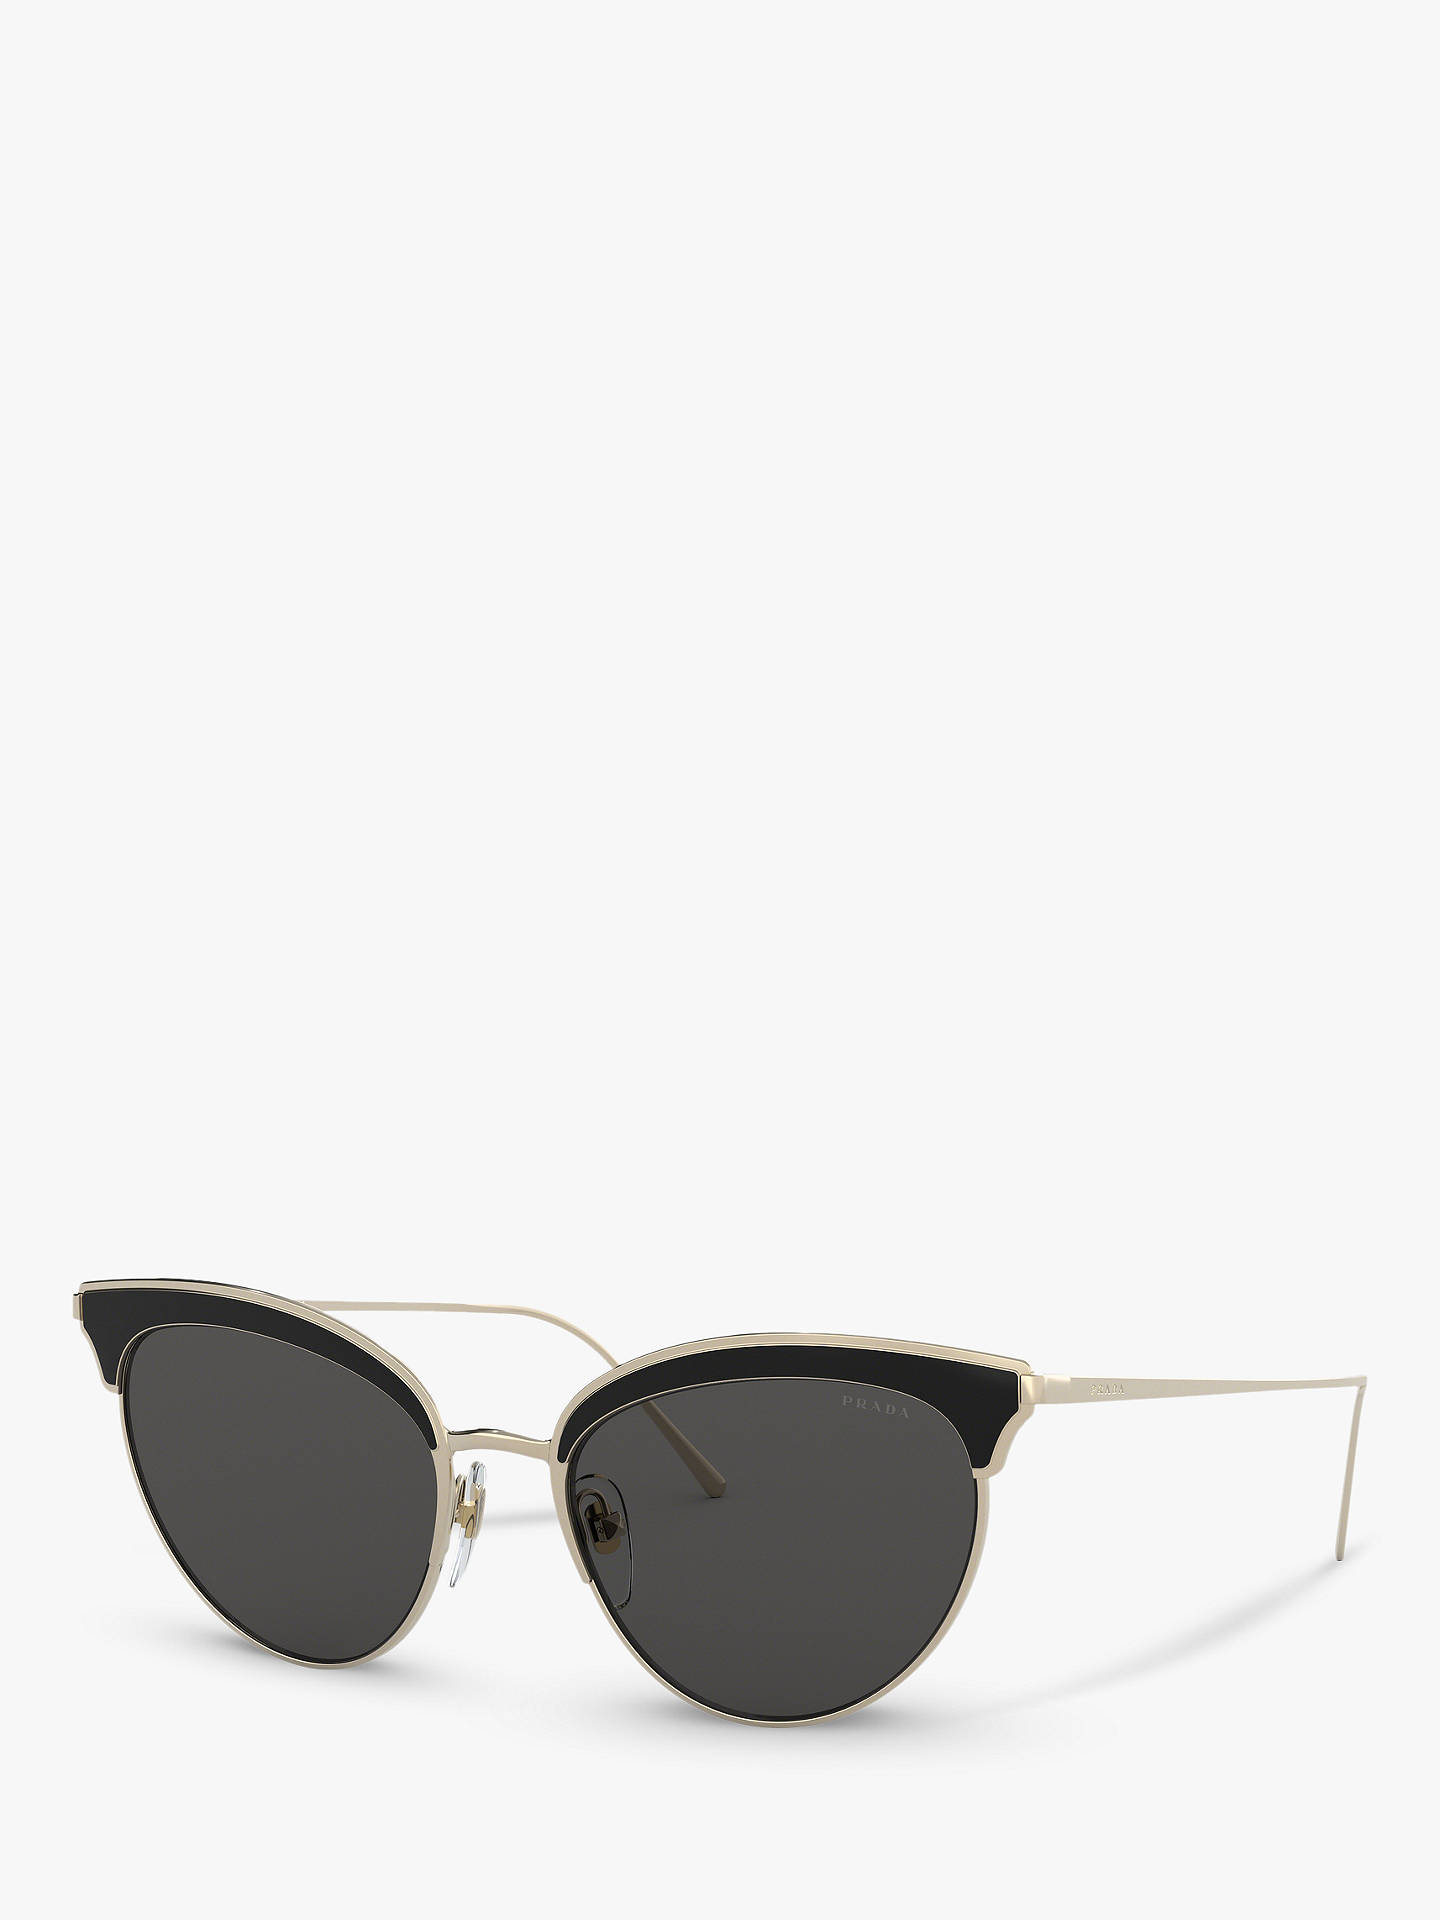 b8e5c178d97a Prada PR 60VS Women s Cat s Eye Sunglasses at John Lewis   Partners